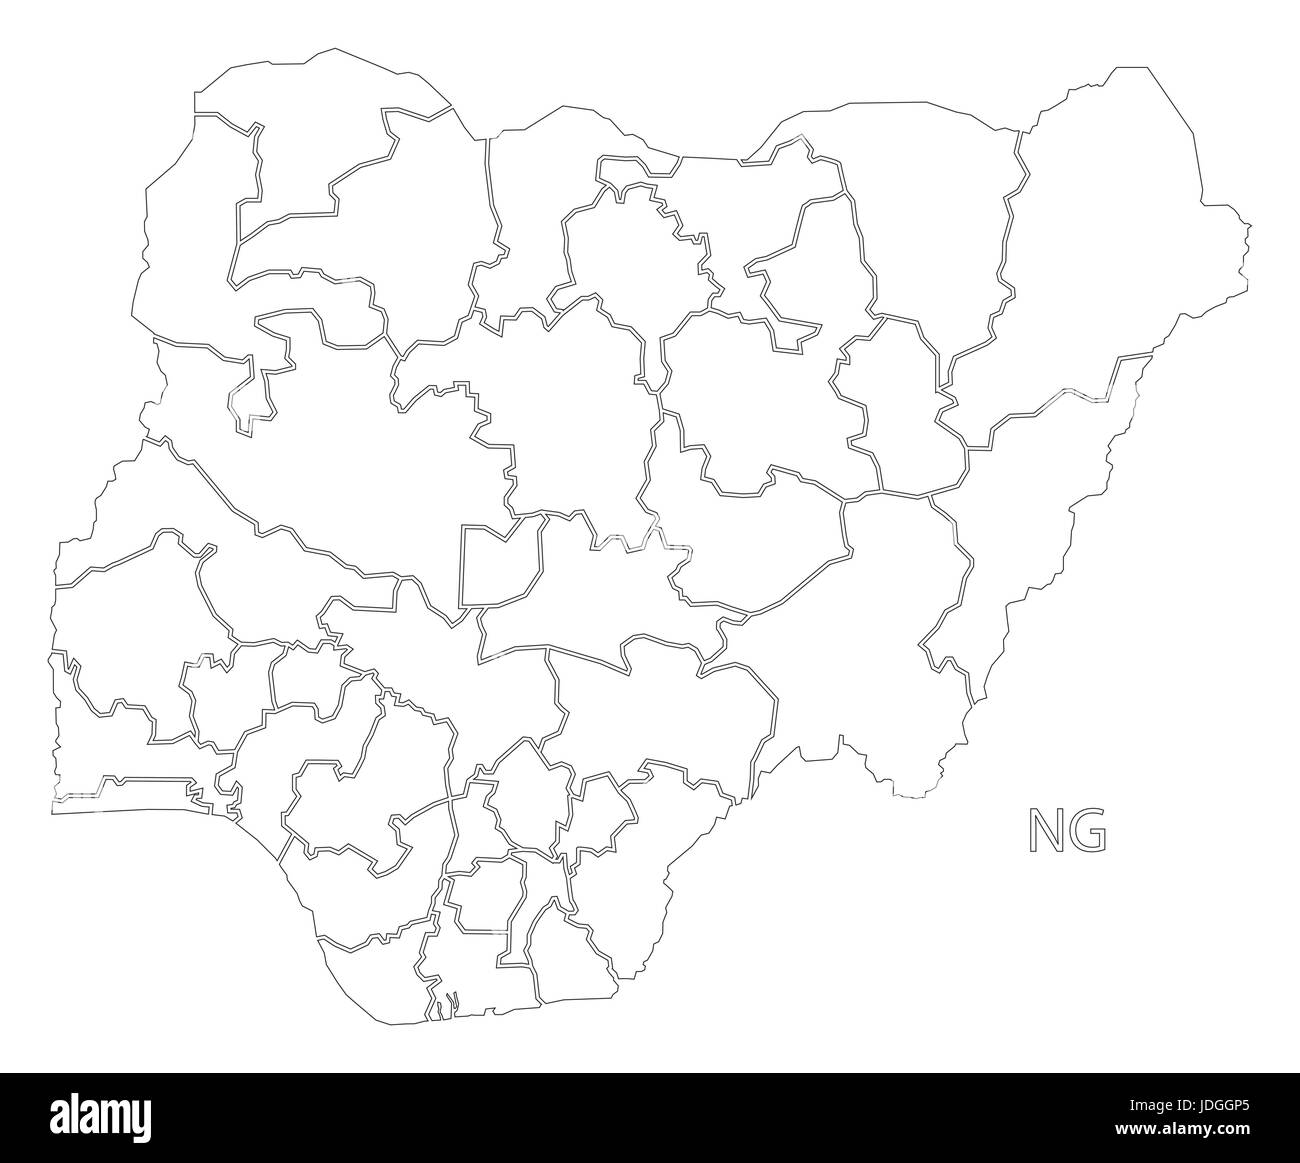 Nigeria provinces outline silhouette map illustration with black shape - Stock Image